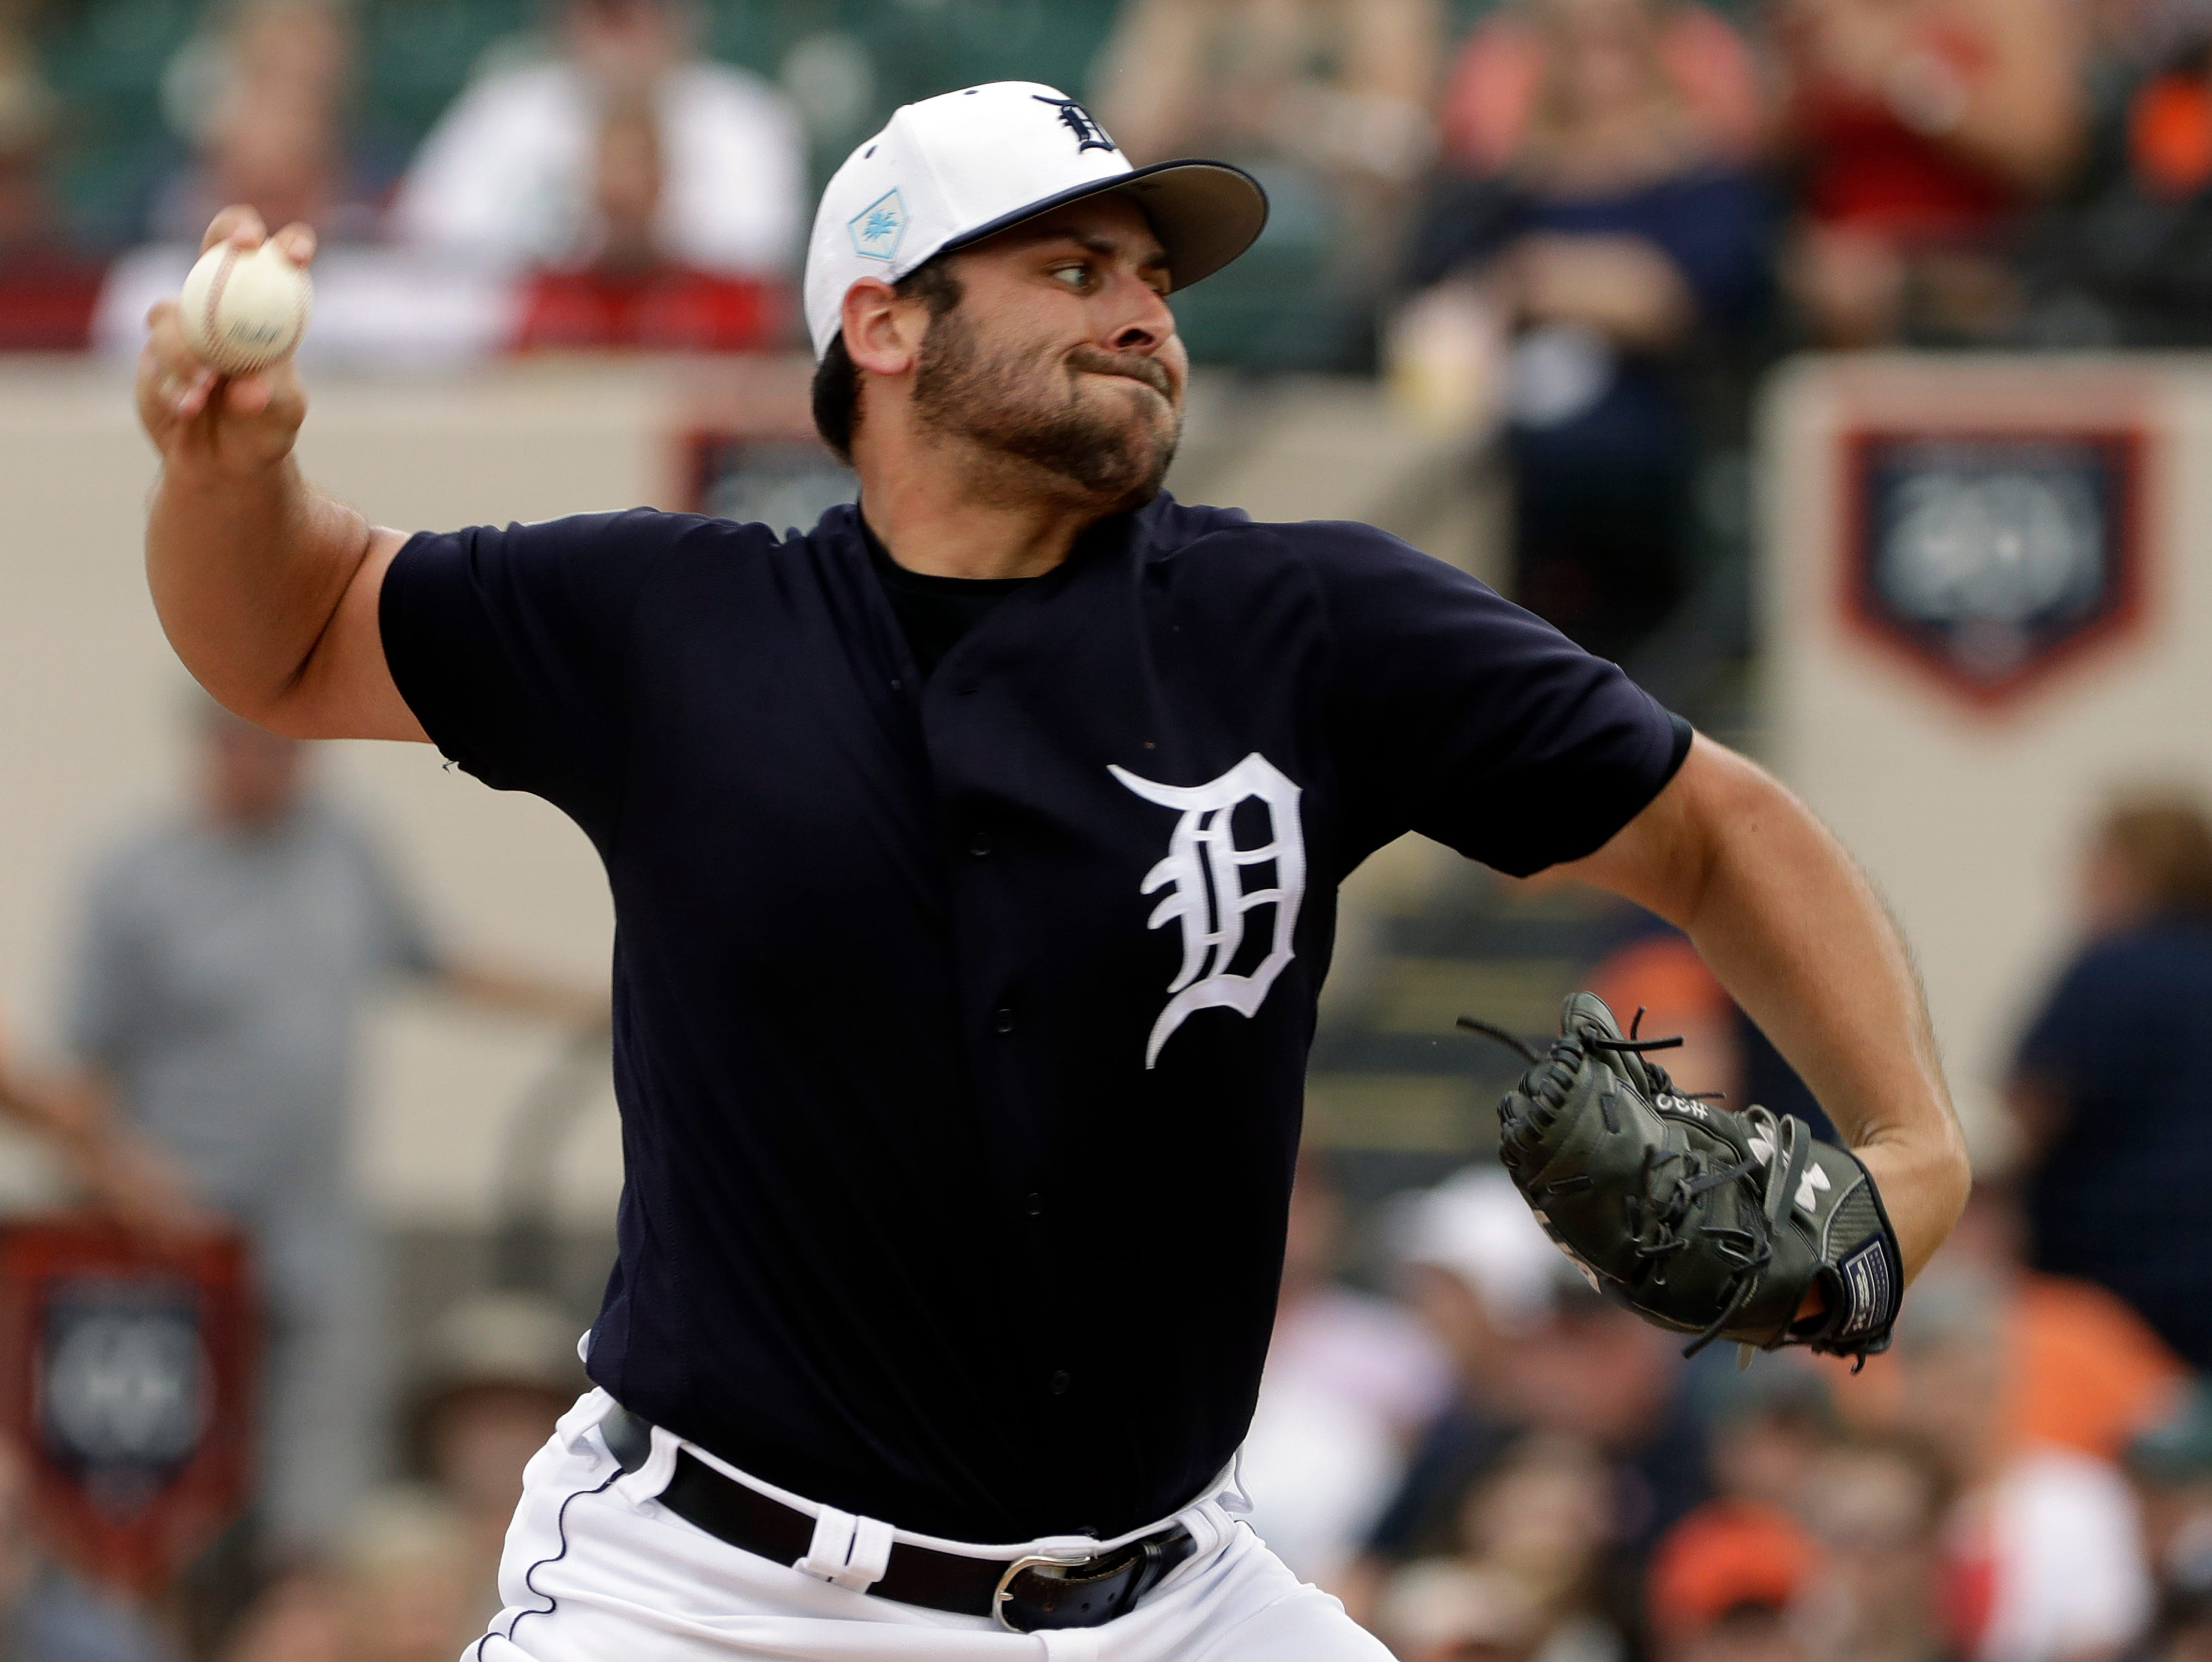 Detroit Tigers starting pitcher Michael Fulmer delivers to the St. Louis Cardinals during the first inning of a 9-5 Grapefruit League victory Monday, March 4, 2019, in St. Petersburg, Fla.